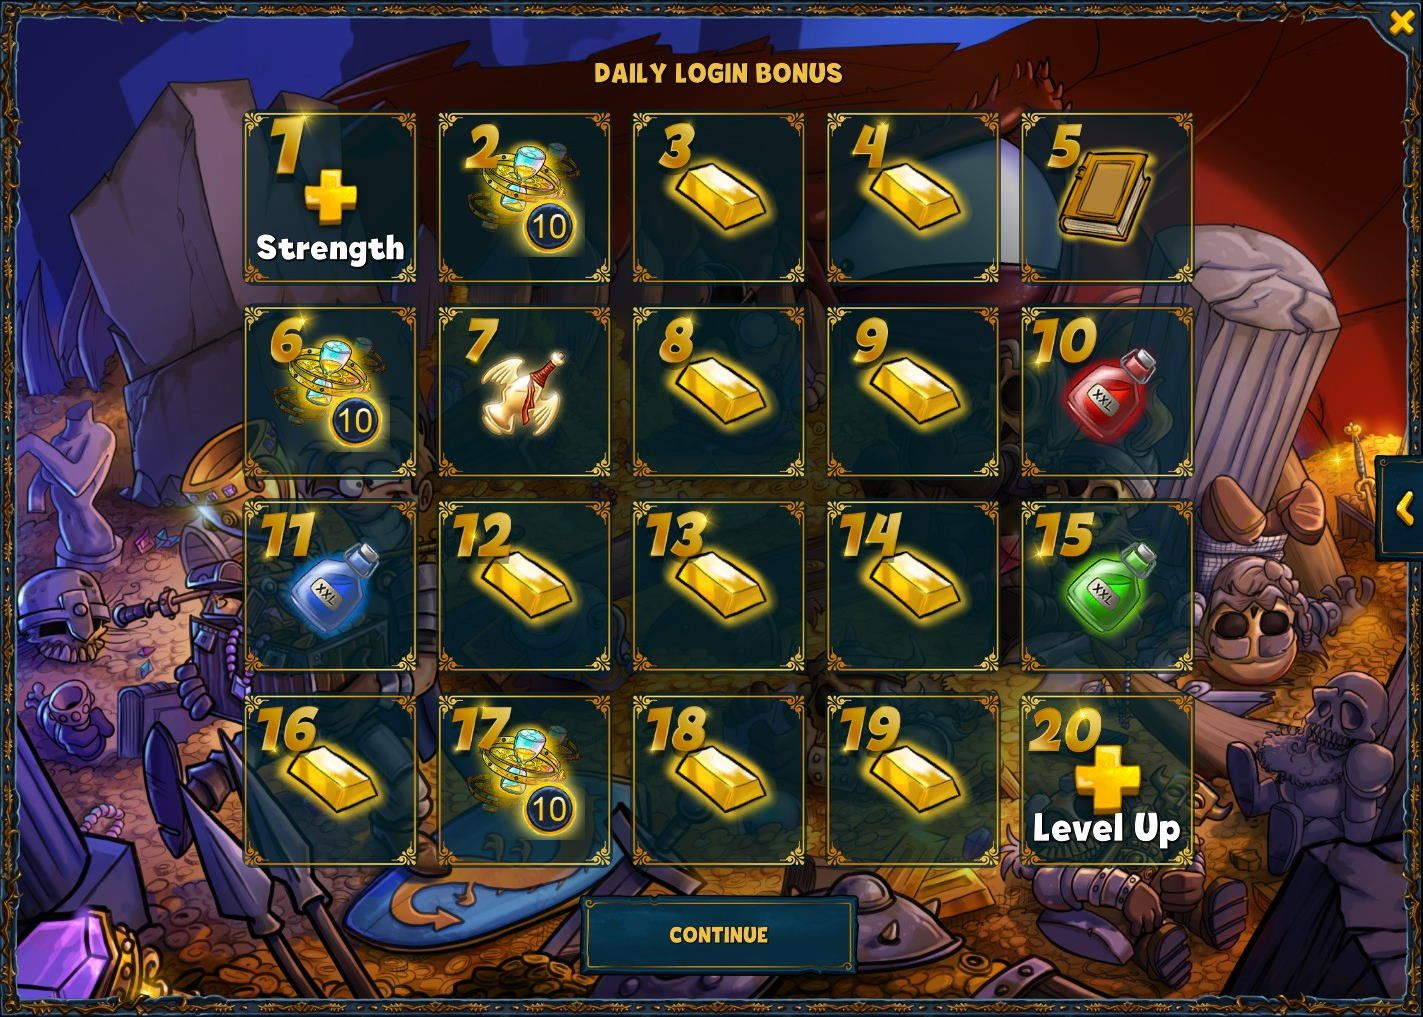 Rewards of the daily login bonus for low level accounts in Shakes and Fidget